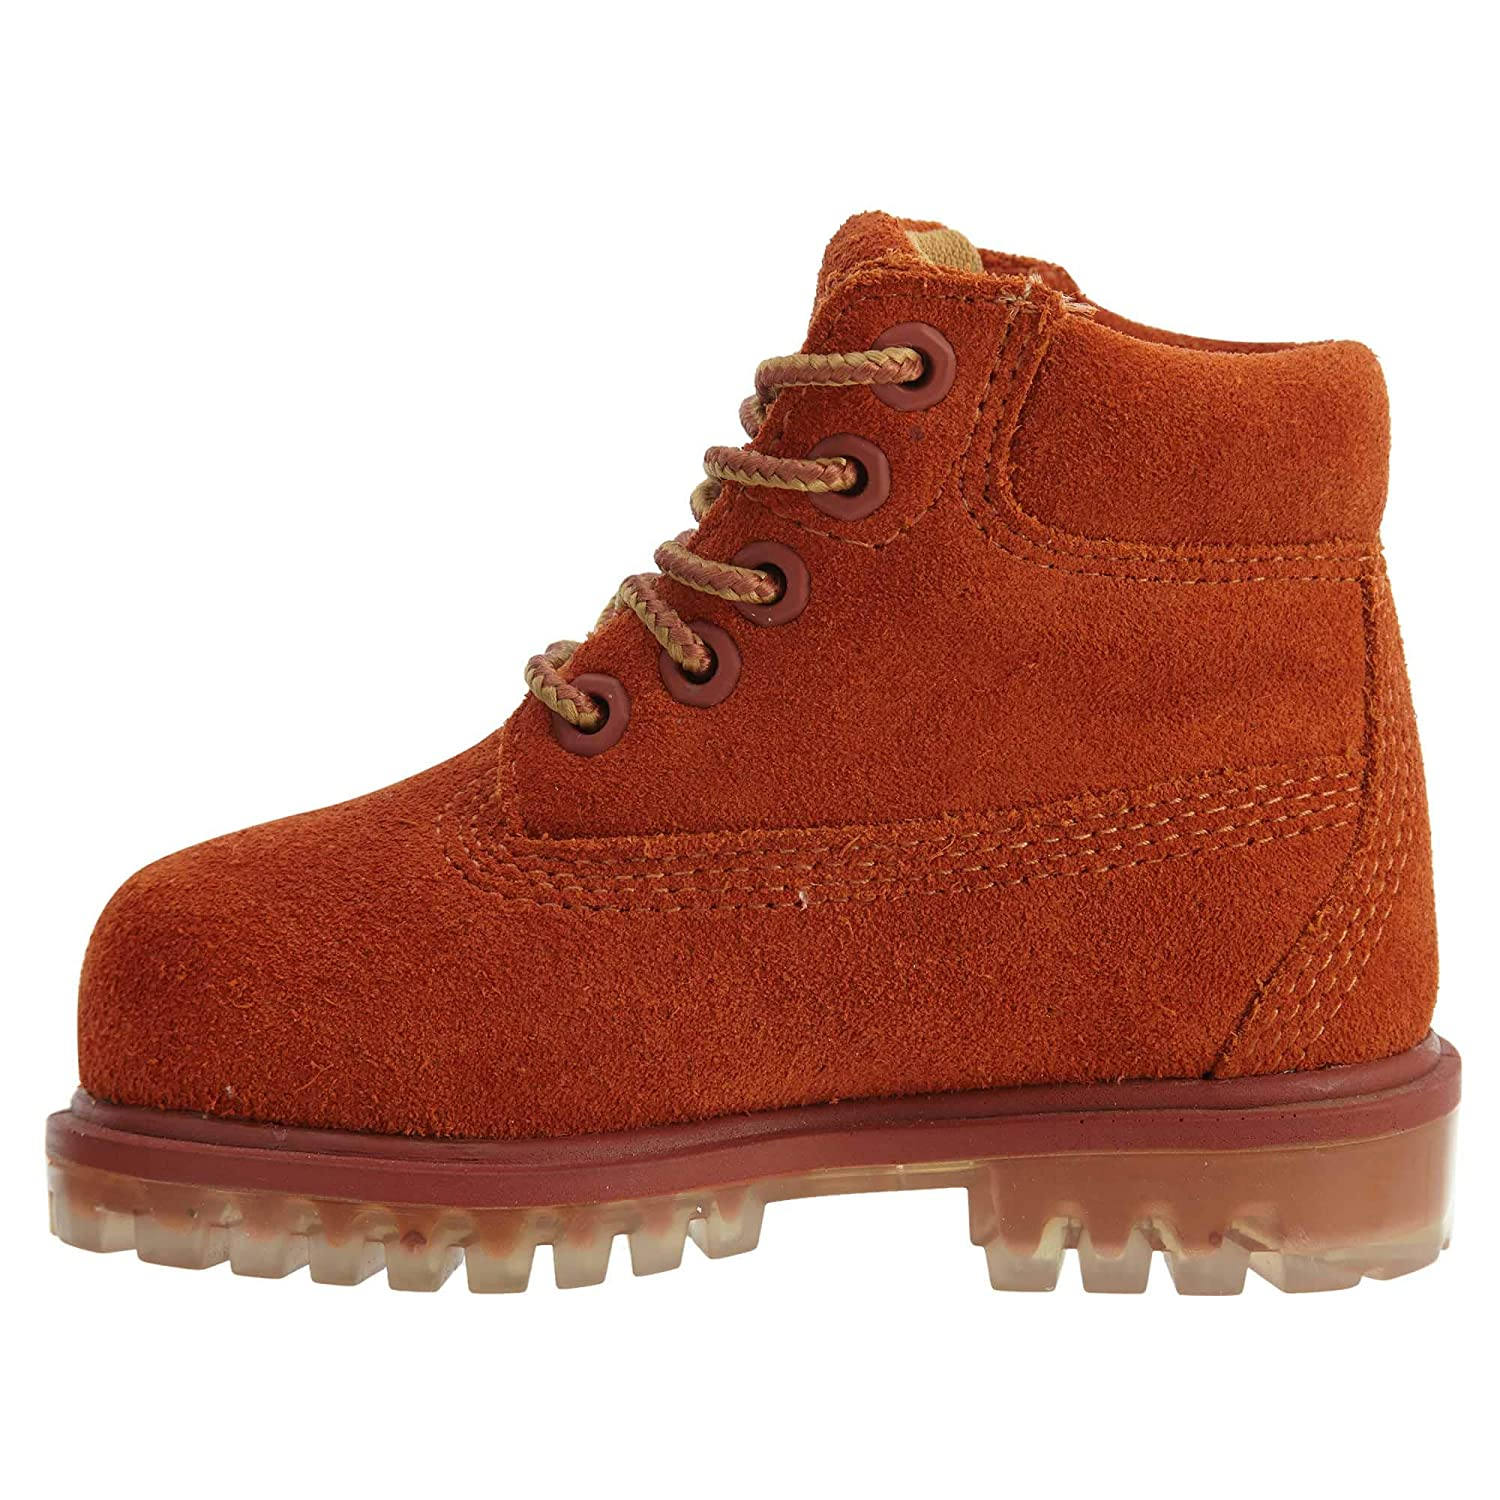 328b45abd738f Amazon.com   Timberland 6 inch TPU Outsole Water Proof Suede Premium  Toddler's Boots Rust tb0a1blq   Boots